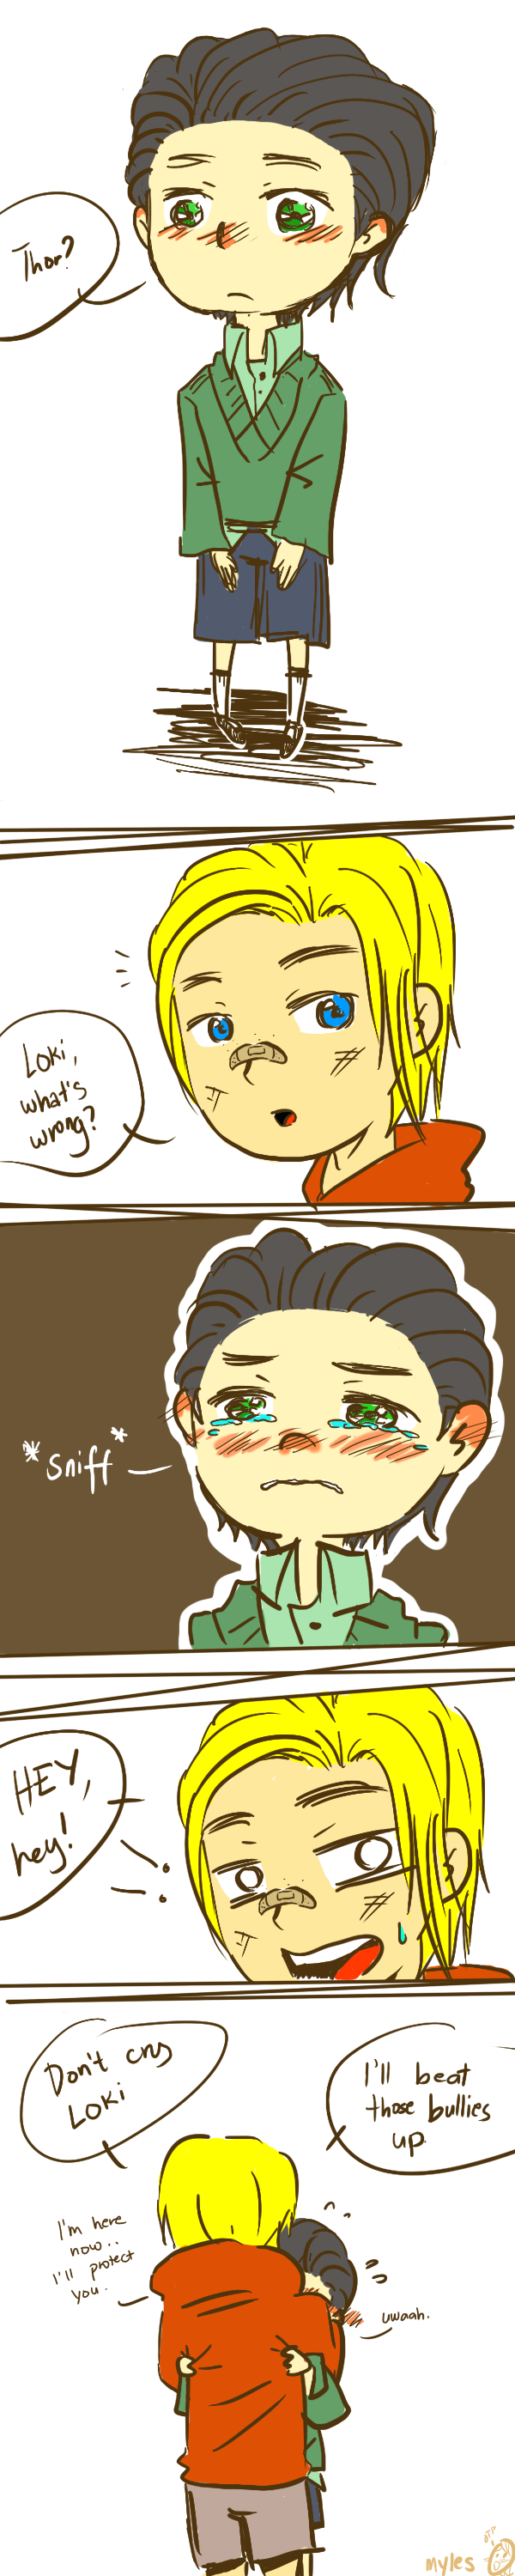 I'm here, don't cry (Thor/Loki) by Durch-Leiden-Freude